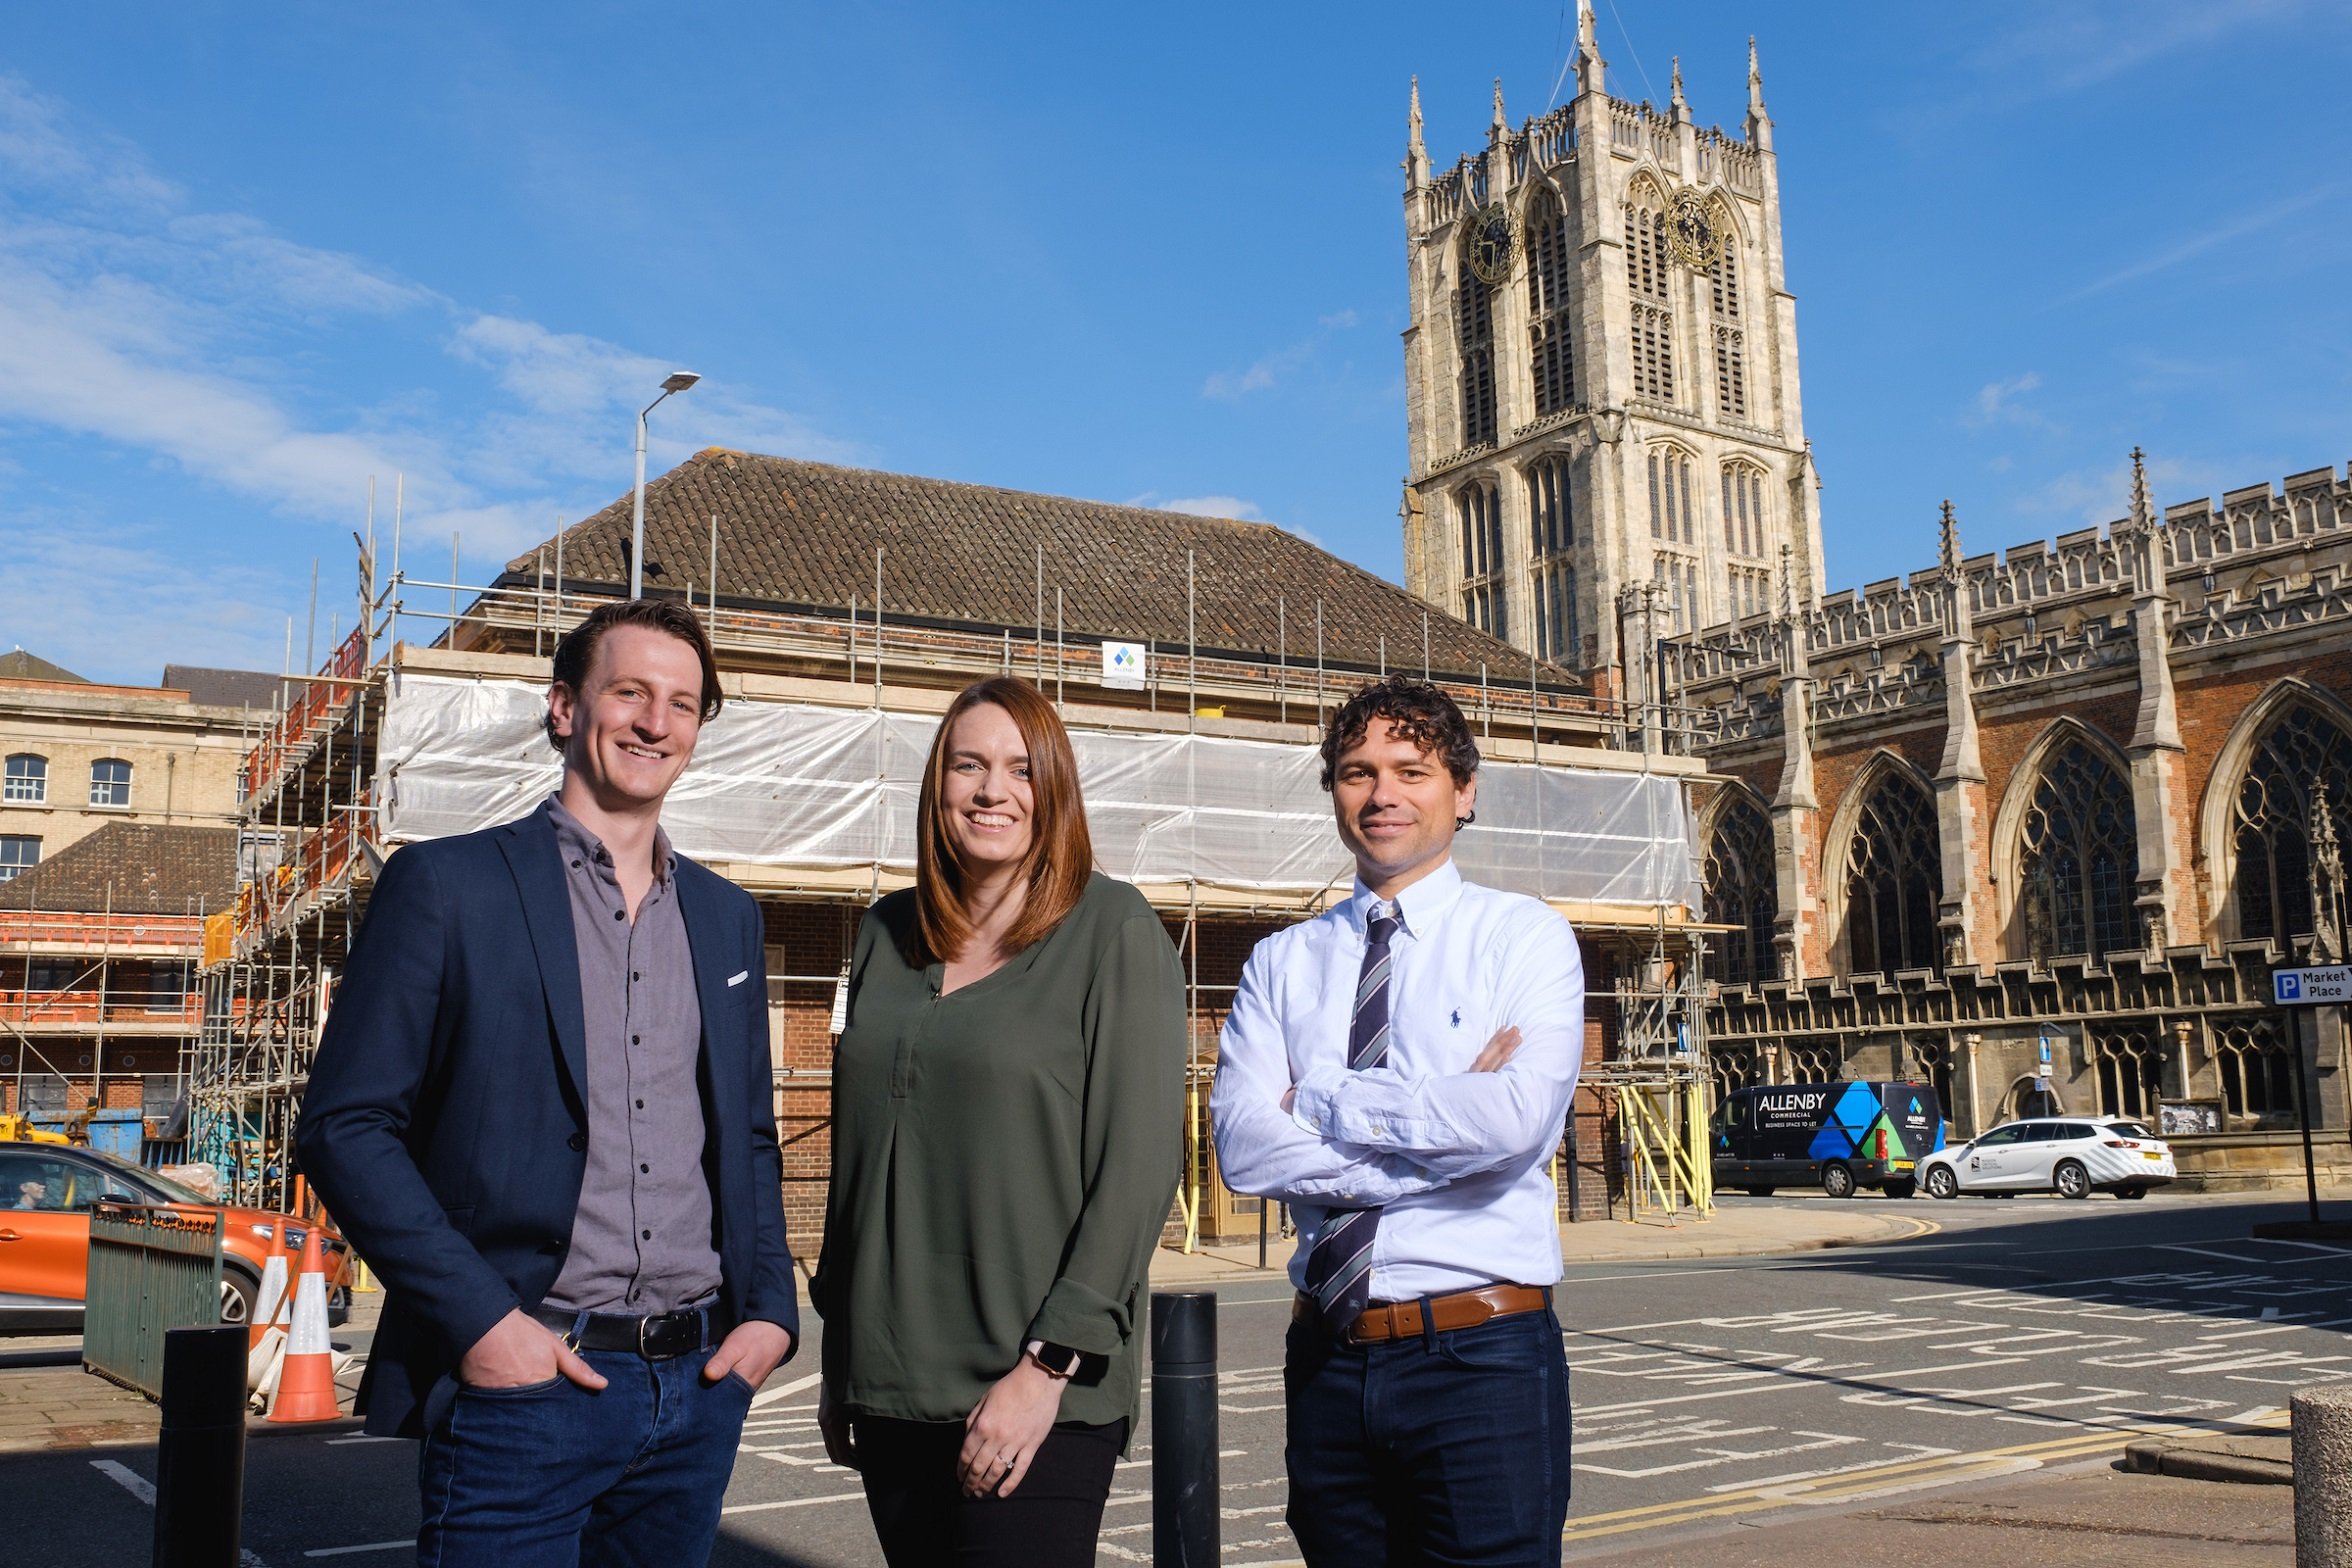 APD Commercial Director Rhiannon Beeson with Charlie Allenby, of Allenby Commercial, left, and RFD's Alex Jenneson outside the technology company's new offices in the shadow of Hull Minster, which are currently undergoing a £2m transformation.